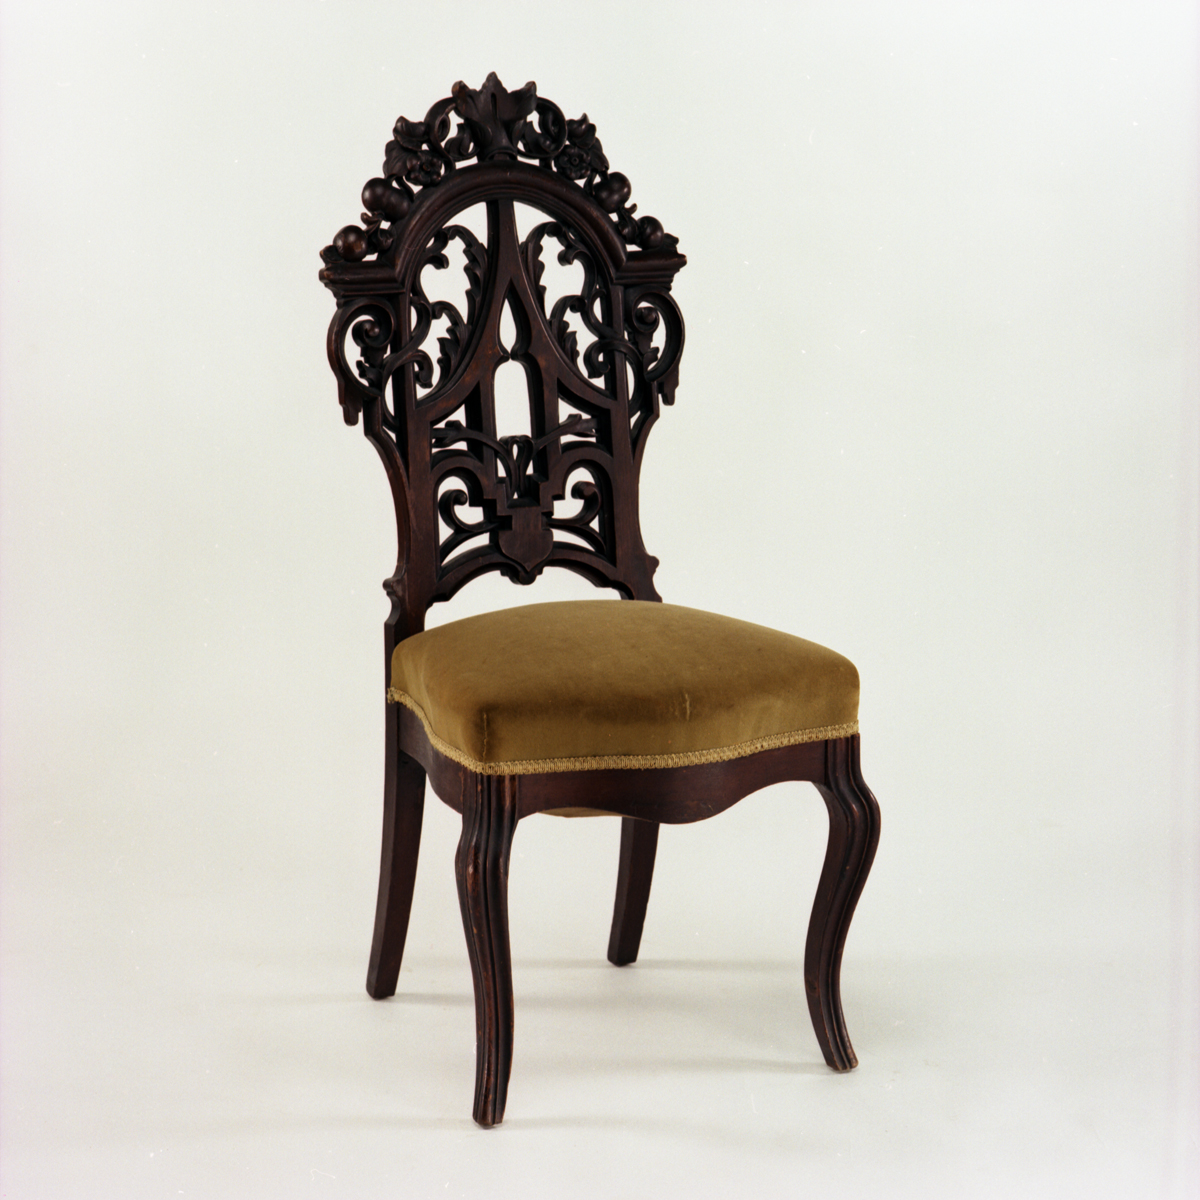 Chair with mustard yellow velvet seat cushion and intricately carved dark wood back